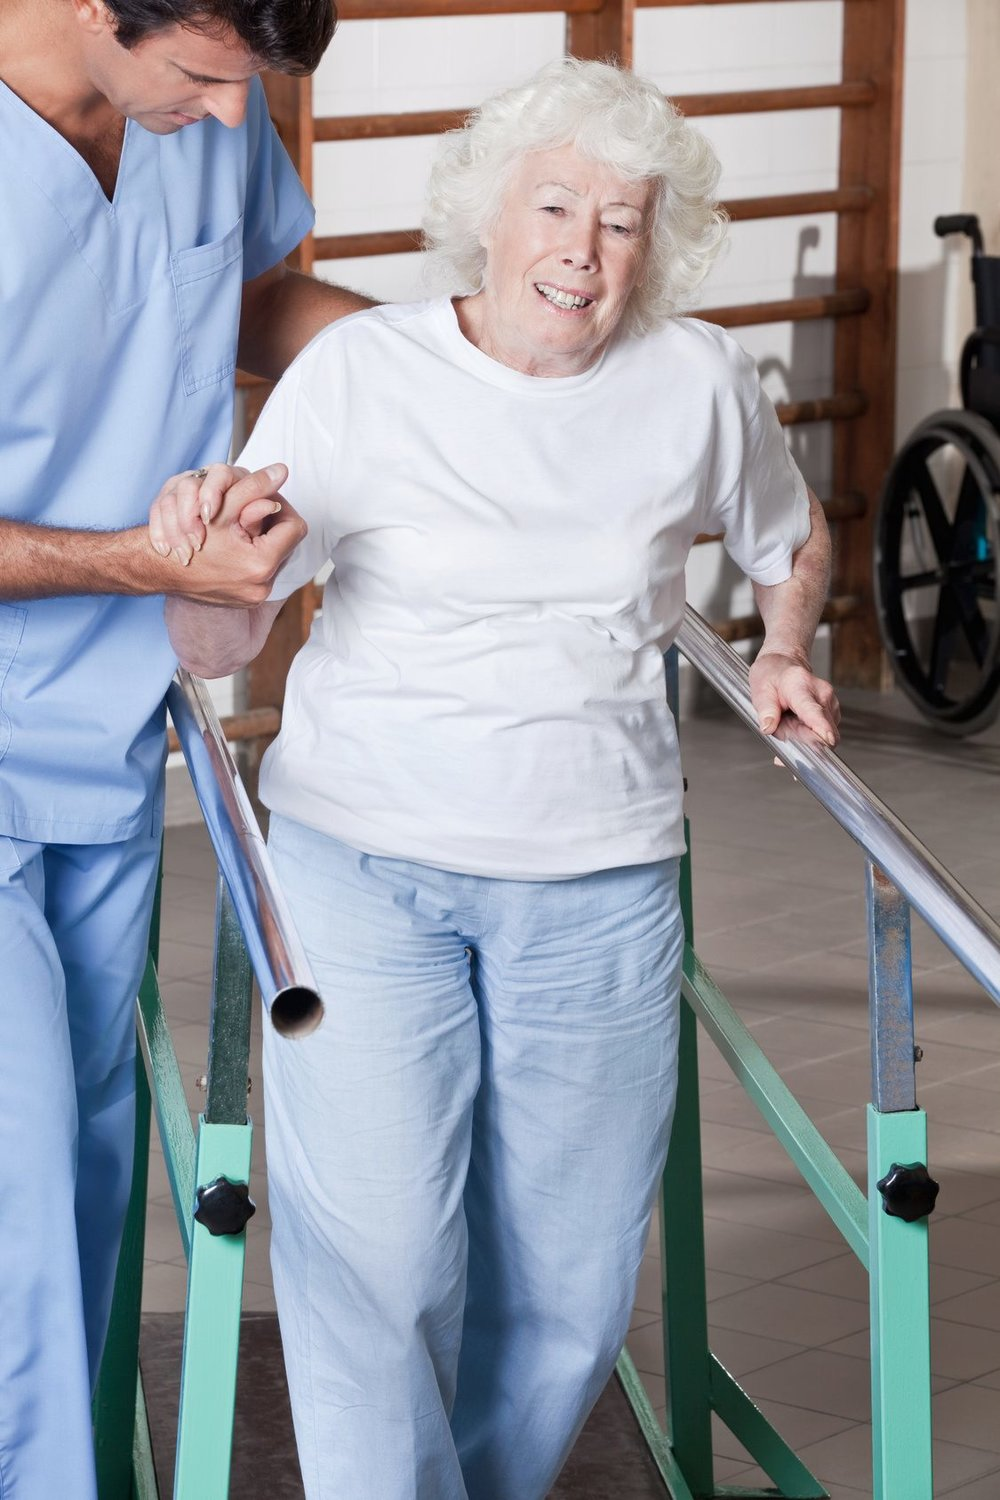 Are you concerned with falls or balance loss?